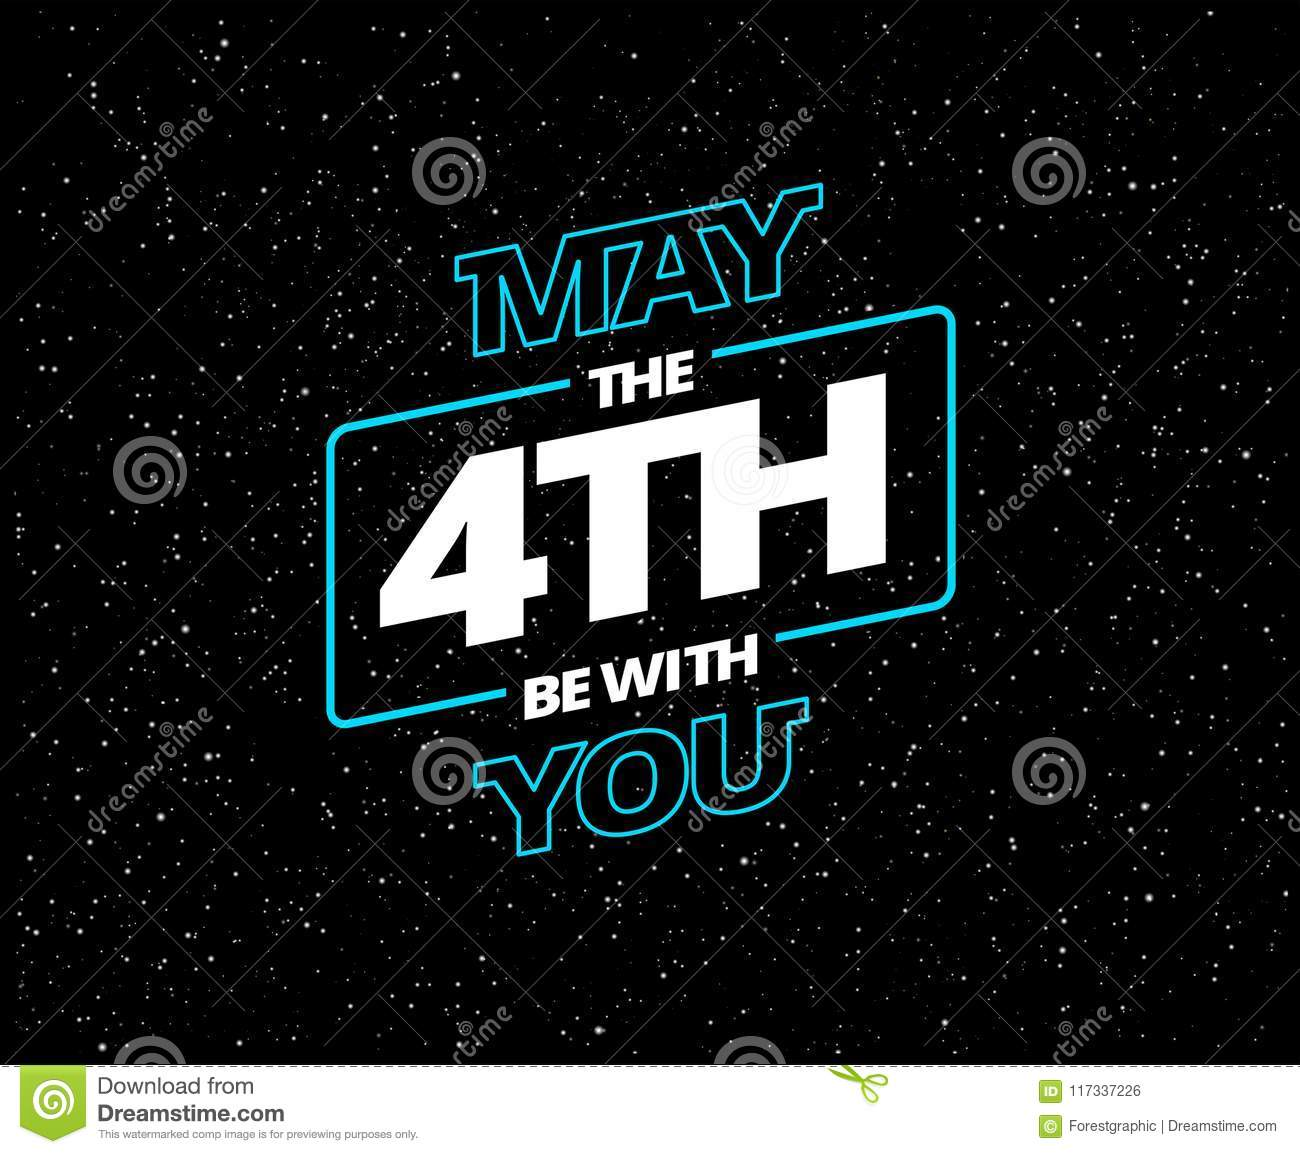 May Th Be You Holiday Greeting Card Vector Blue White Letters Black Starry Night Sky The With And